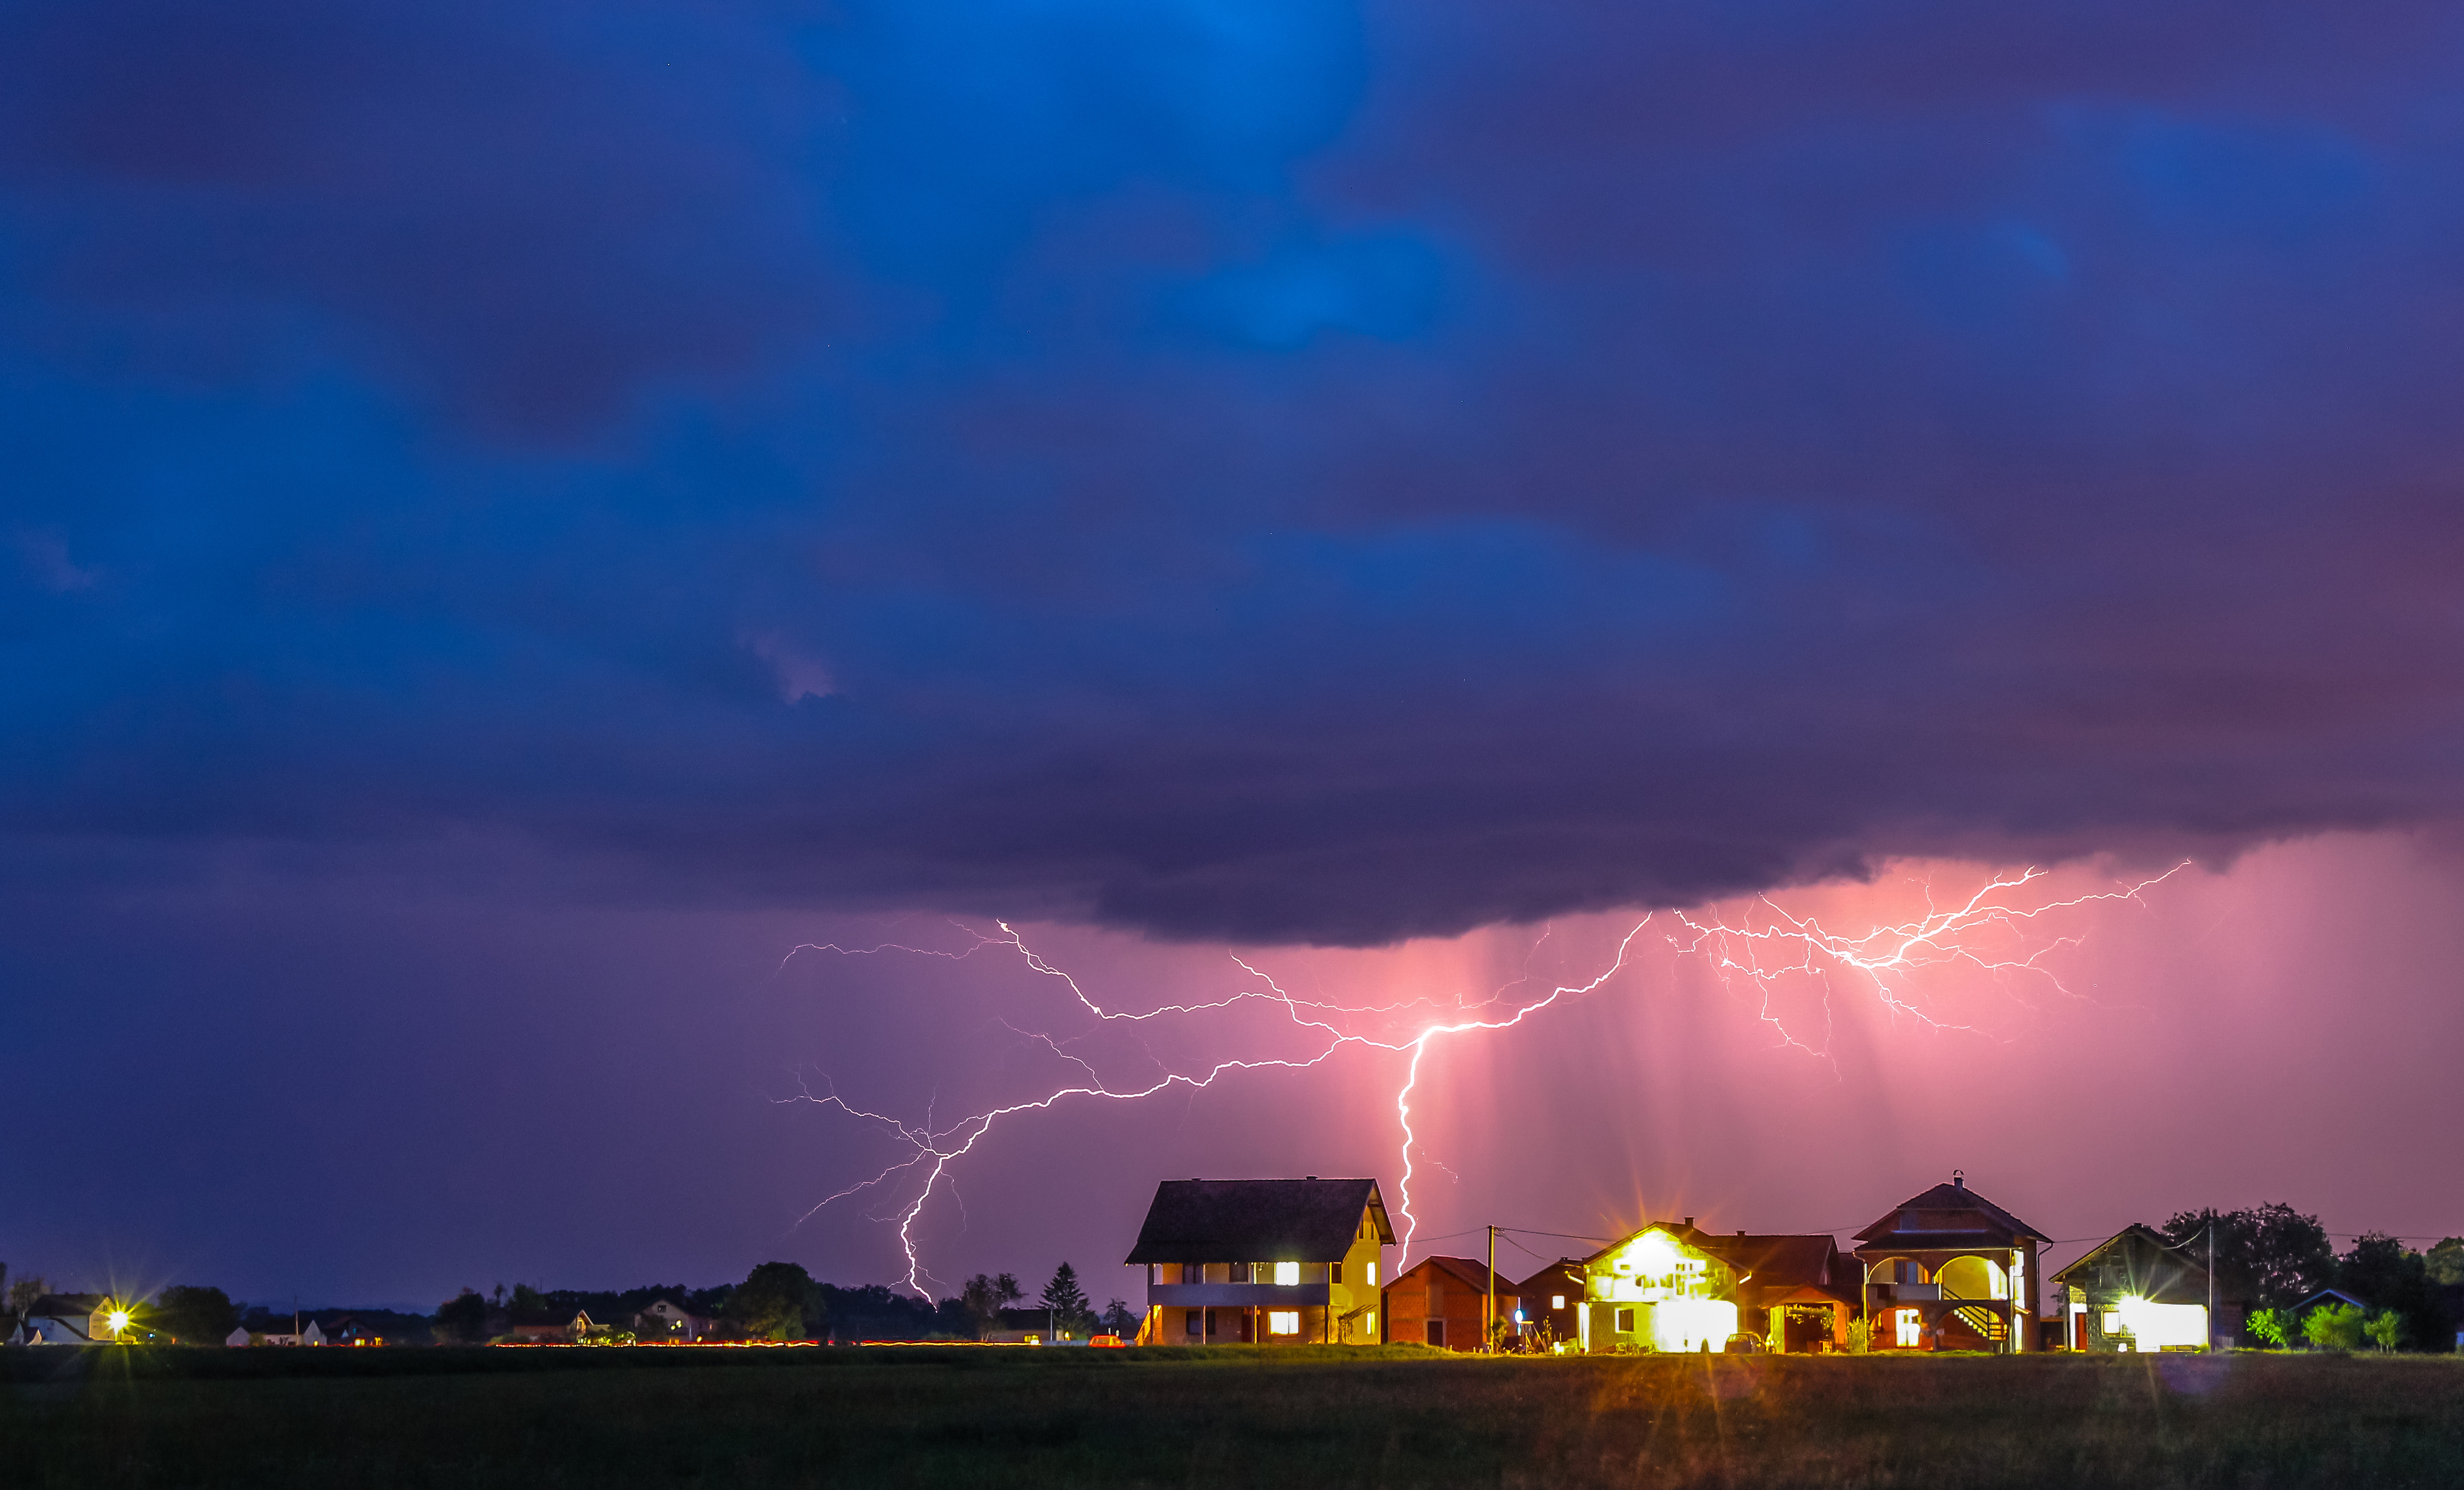 Awesom Storm Front That Darkened >> Warning Signs Of Storms